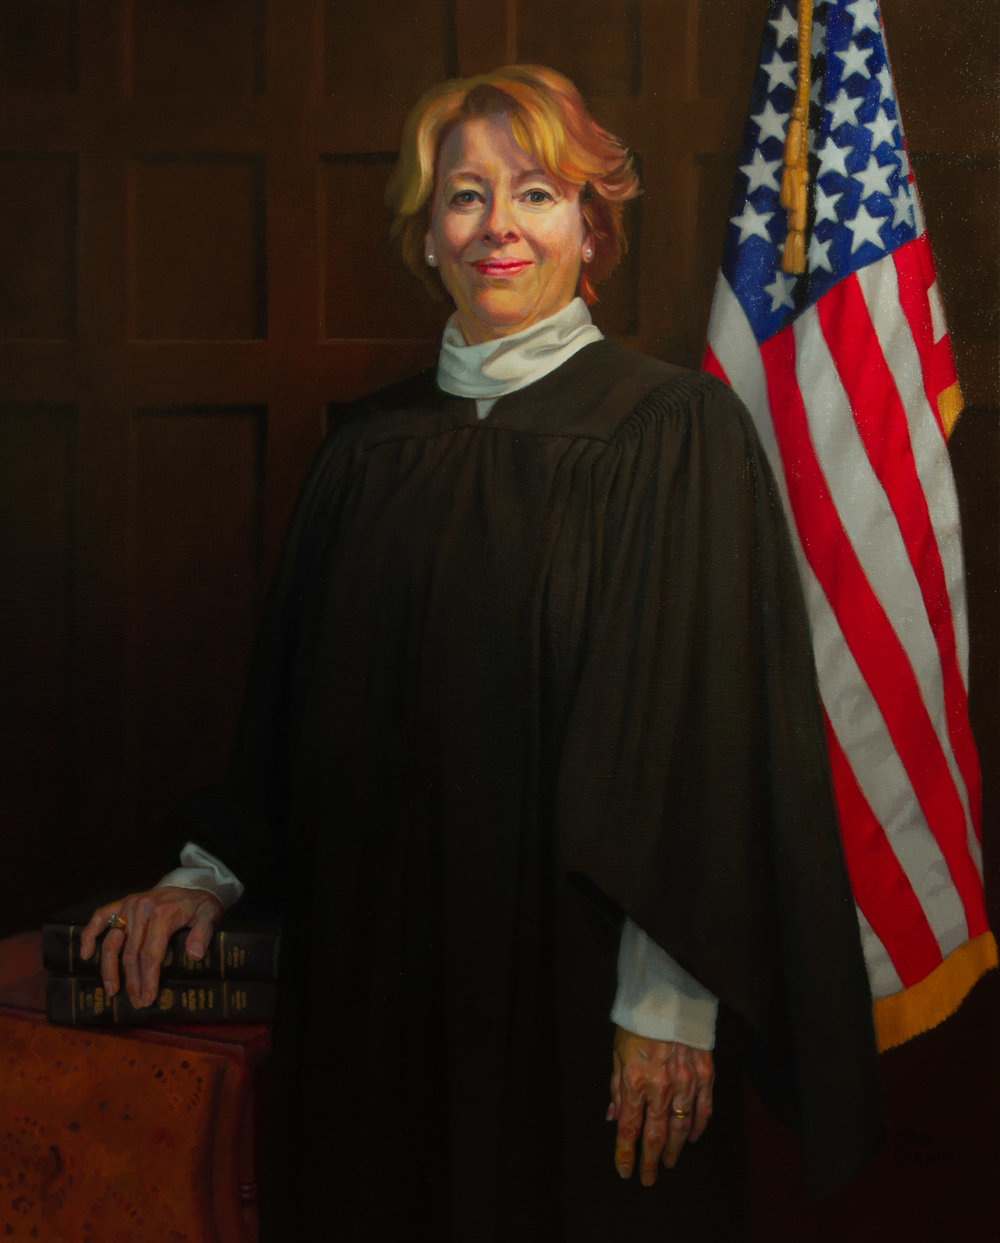 The Honorable Deborah Paxson